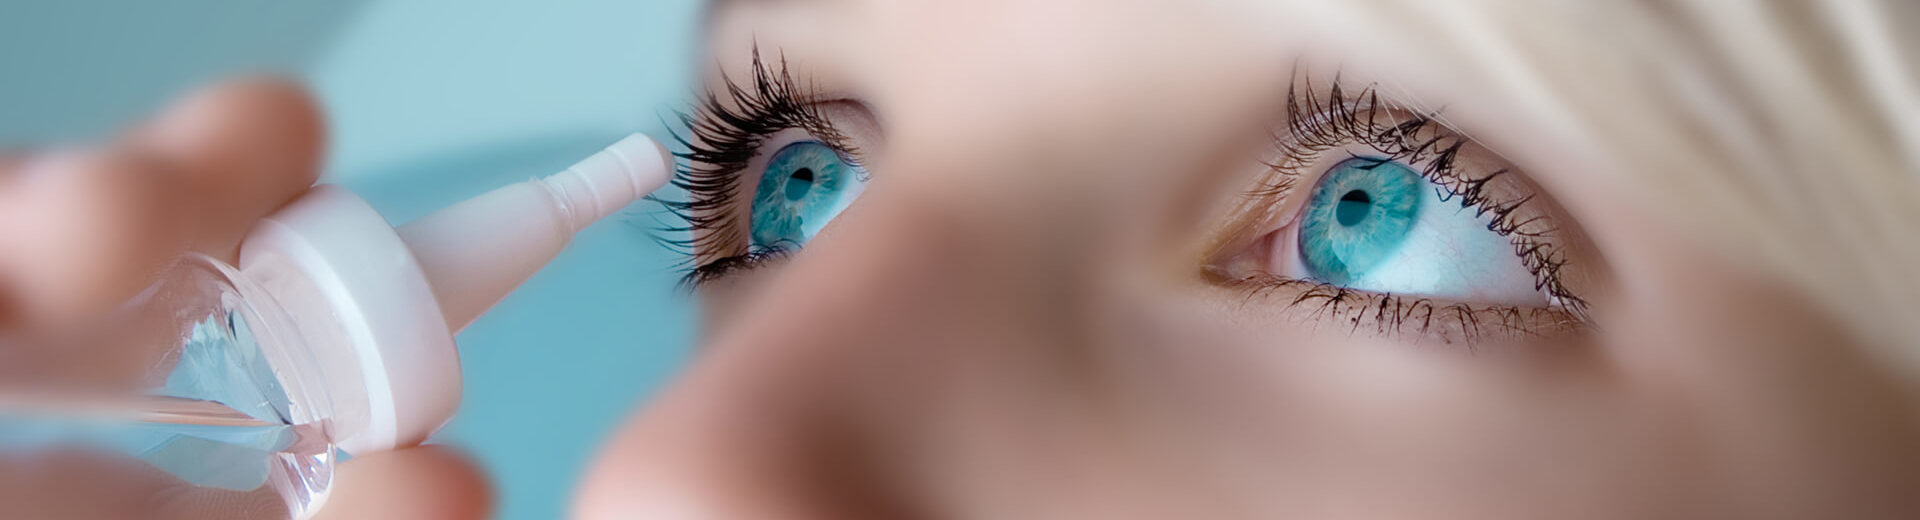 will I develop dry eyes after laser treatment